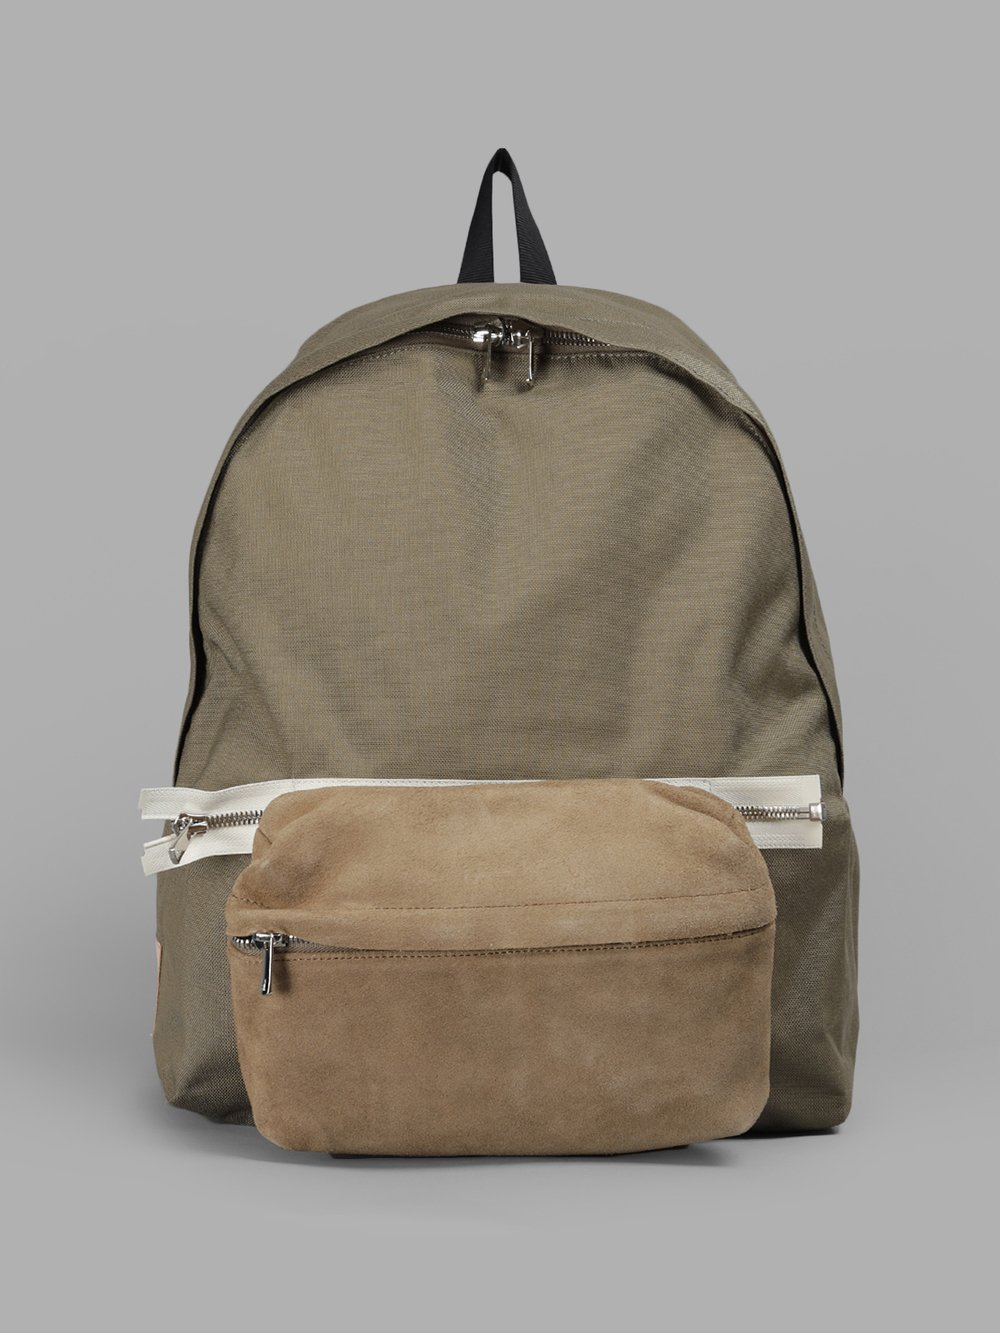 HENDER SCHEME BACKPACKS